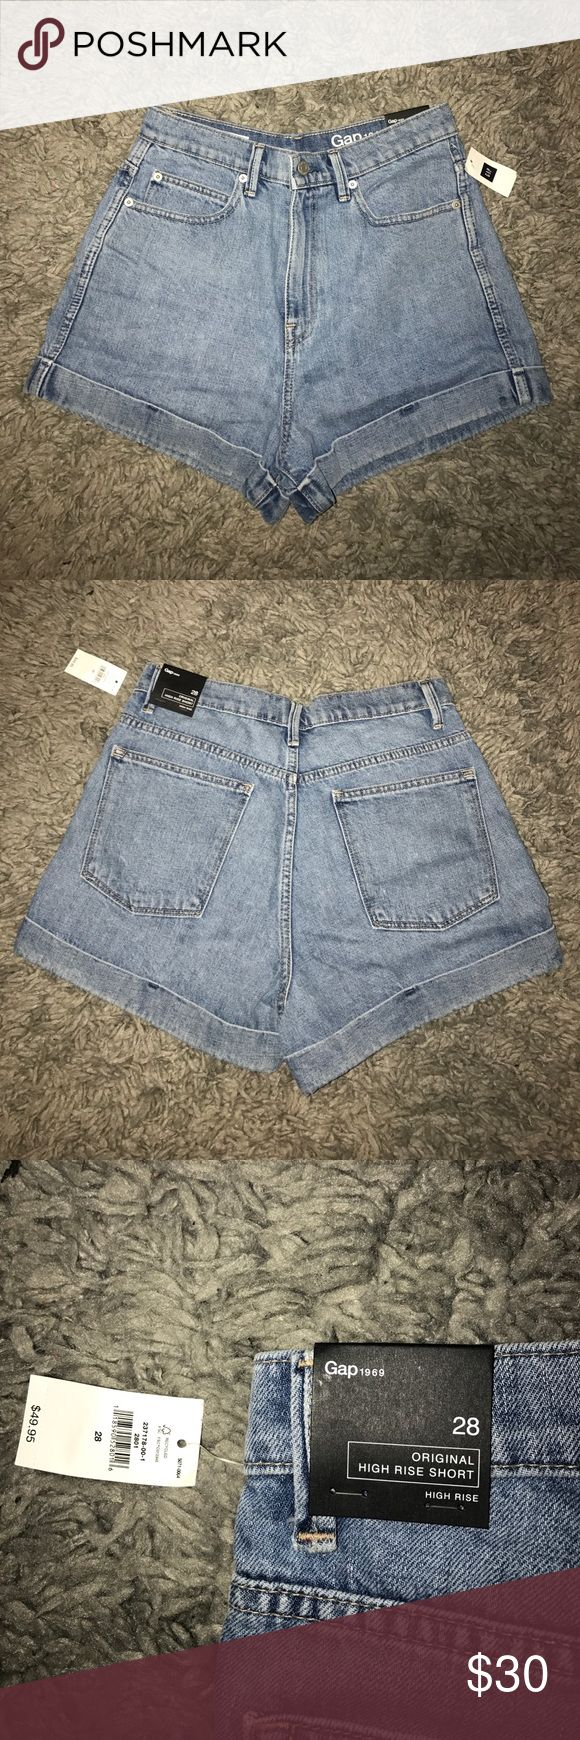 GAP HIGH RISE SHORTS similar to the american apparels popular high rise shorts - brand new with tags size 28 (6) GAP Shorts Jean Shorts